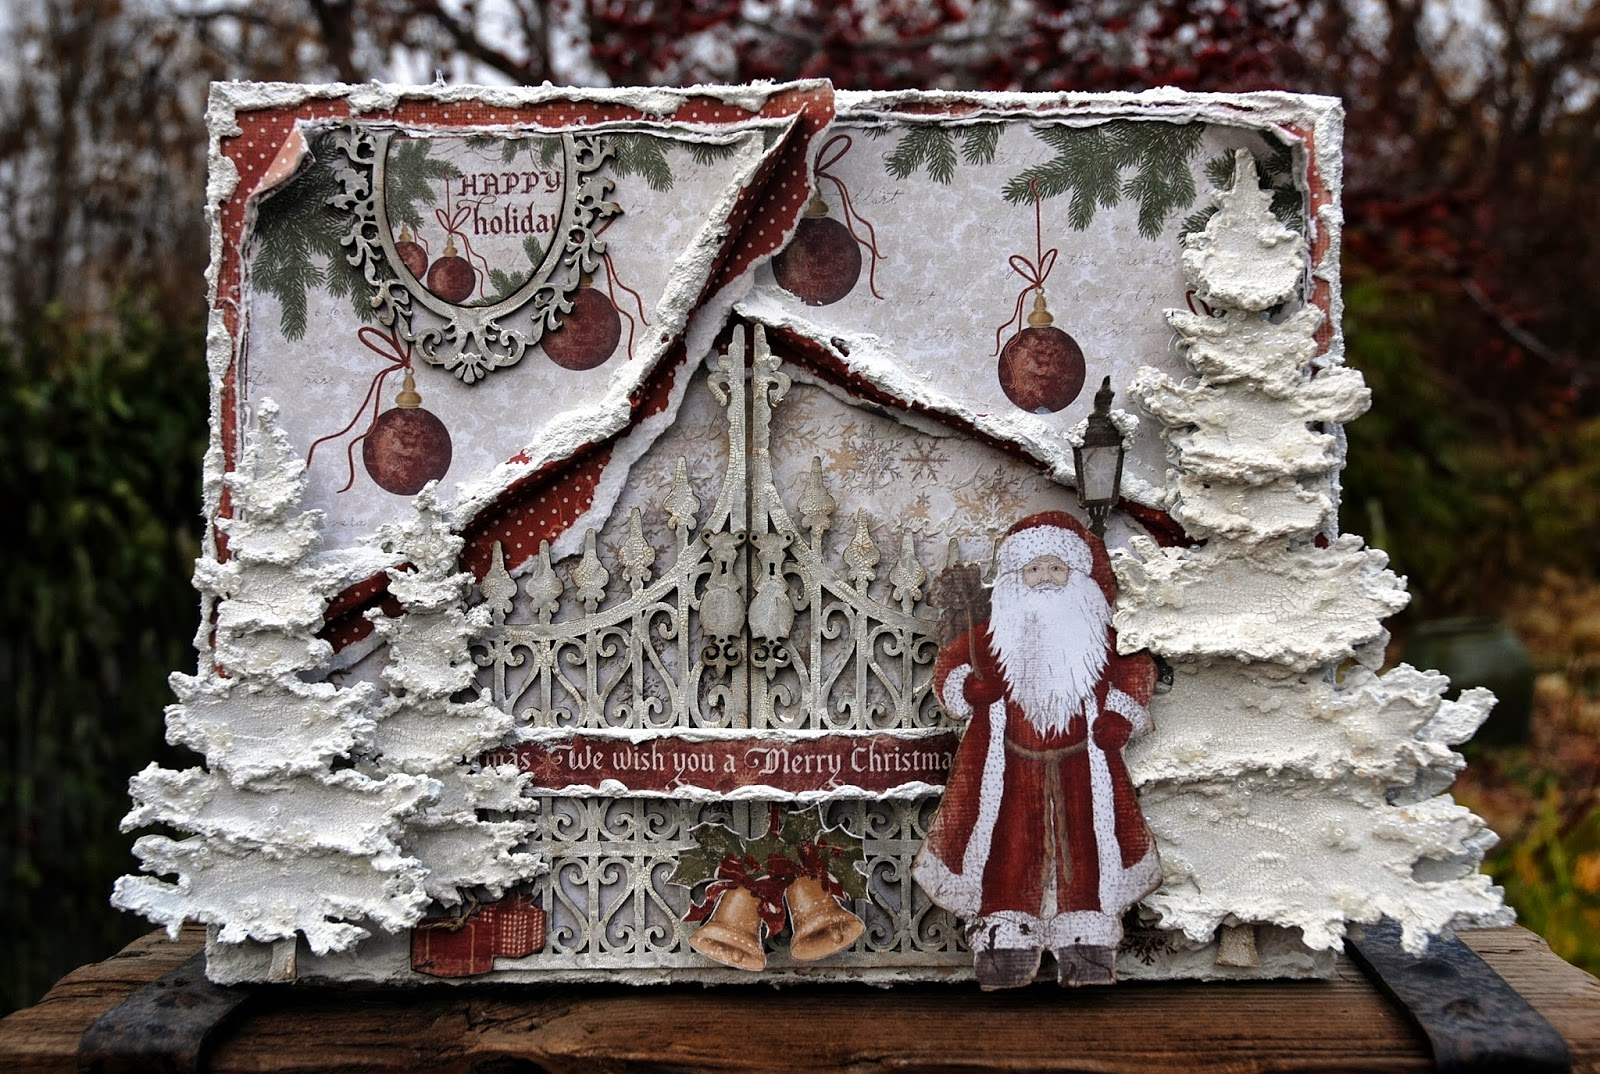 Christmas Board Design.Life S Little Embellishments We Wish You A Merry Christmas